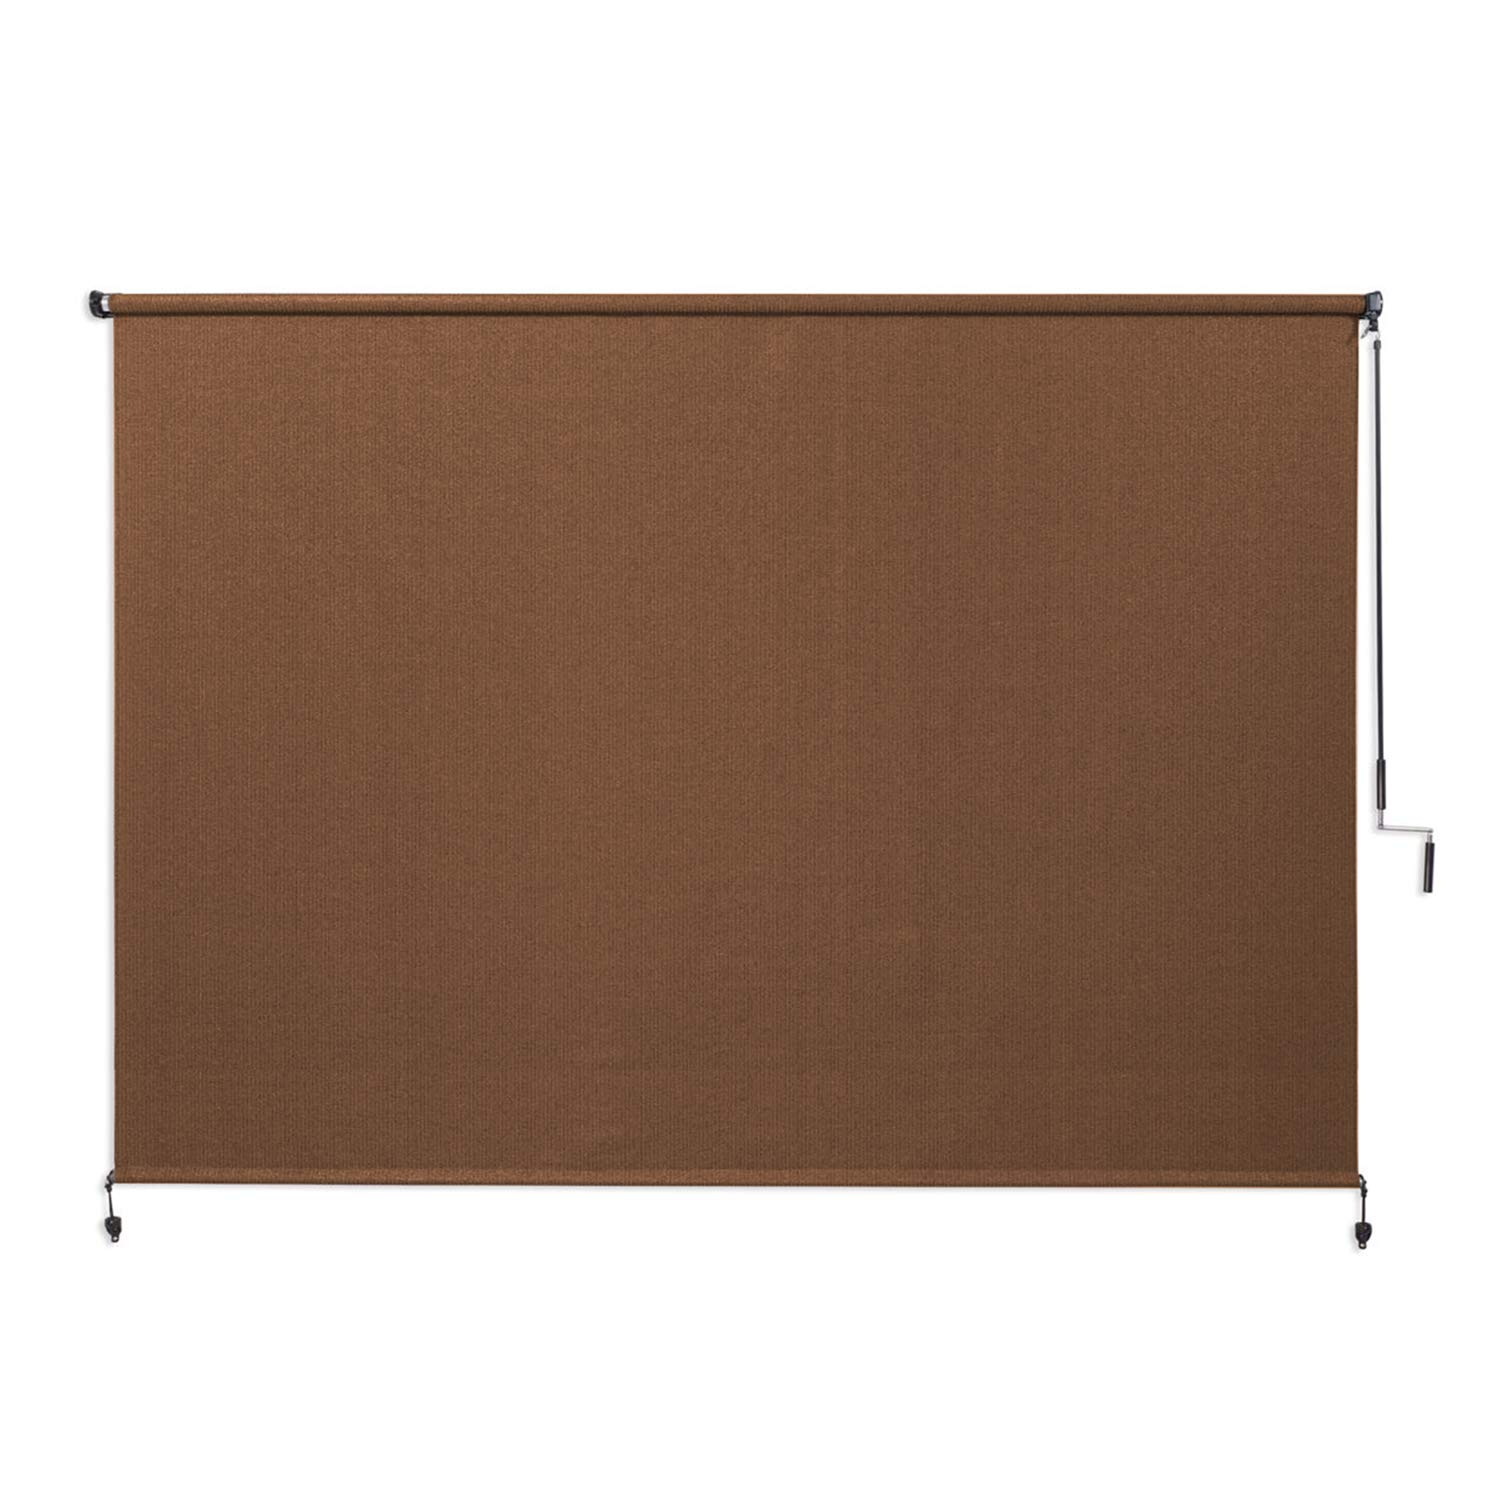 Coolaroo Exterior Roller Shade, Cordless Roller Shade with 90 UV Protection, No Valance, 8 W X 6 L , Mocha